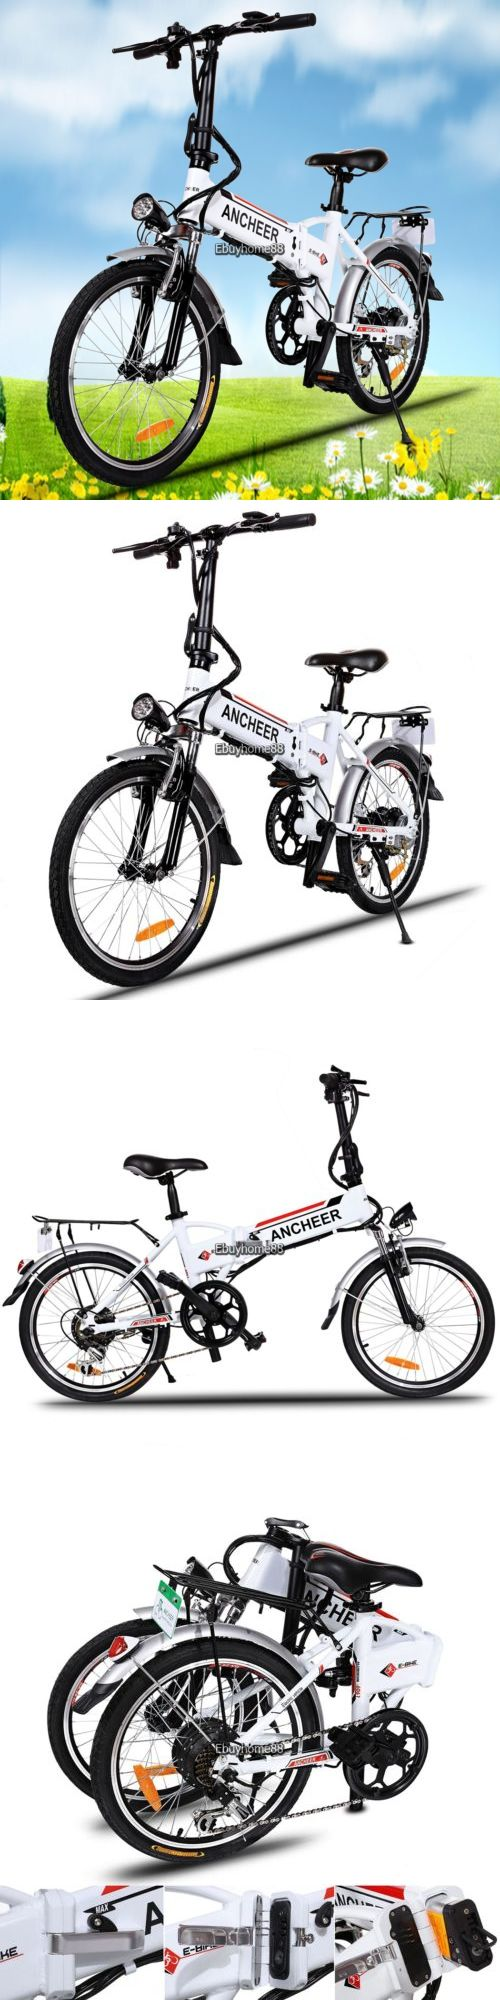 Electric Bicycles 74469: White Foldable Electric Mountain Bike Bicycle Ebike Folding Lithium 250W 36V BUY IT NOW ONLY: $532.68